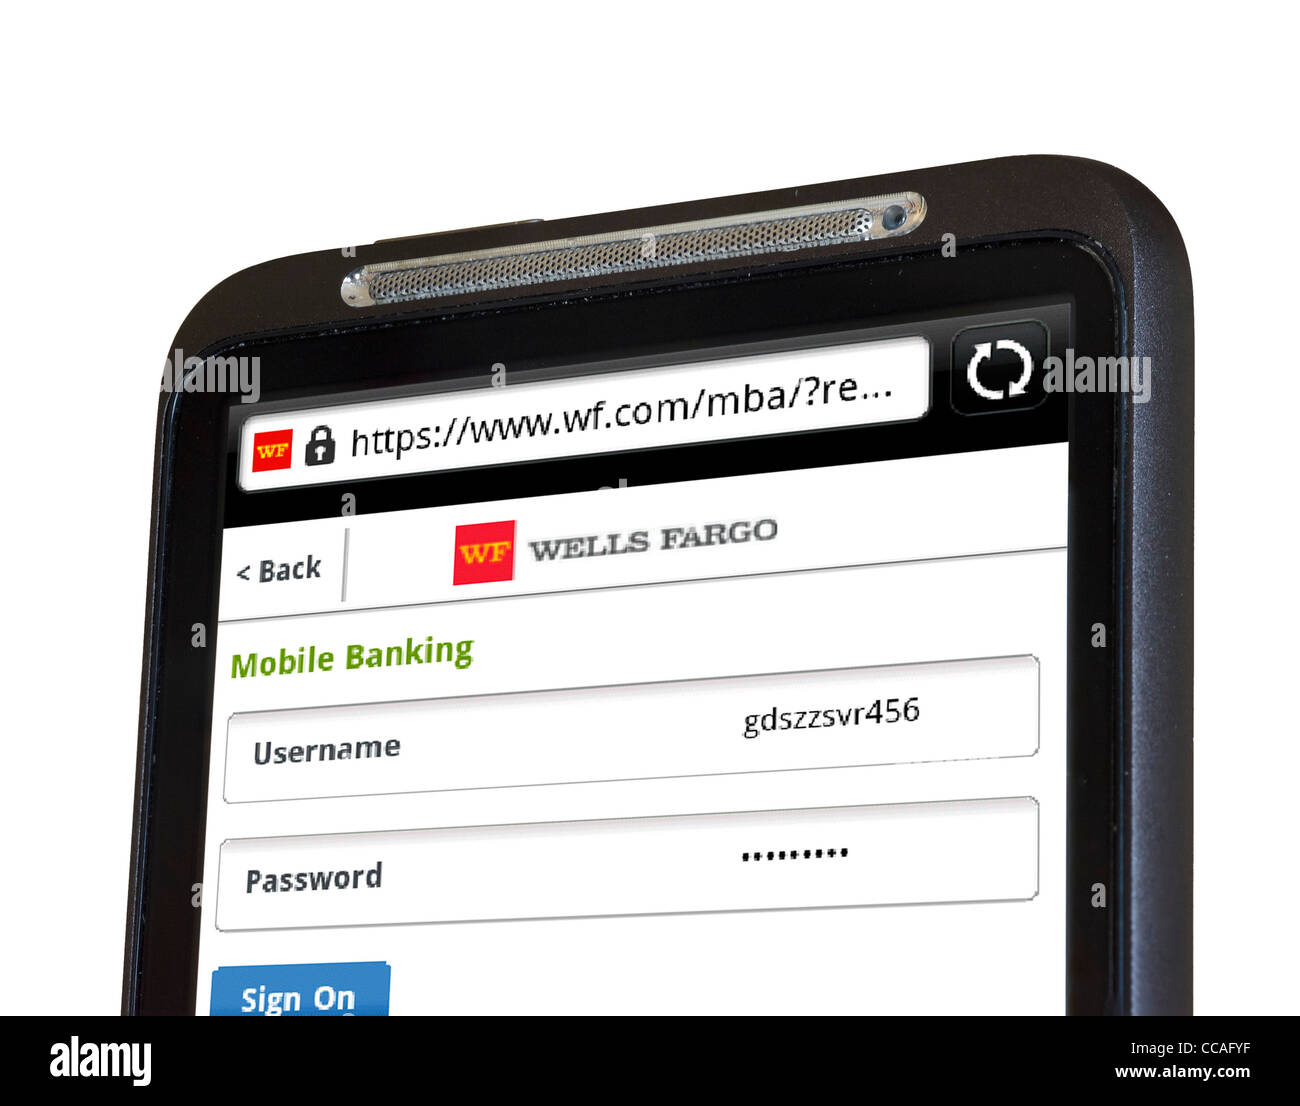 Logging on to online mobile banking with Wells Fargo Bank on an HTC